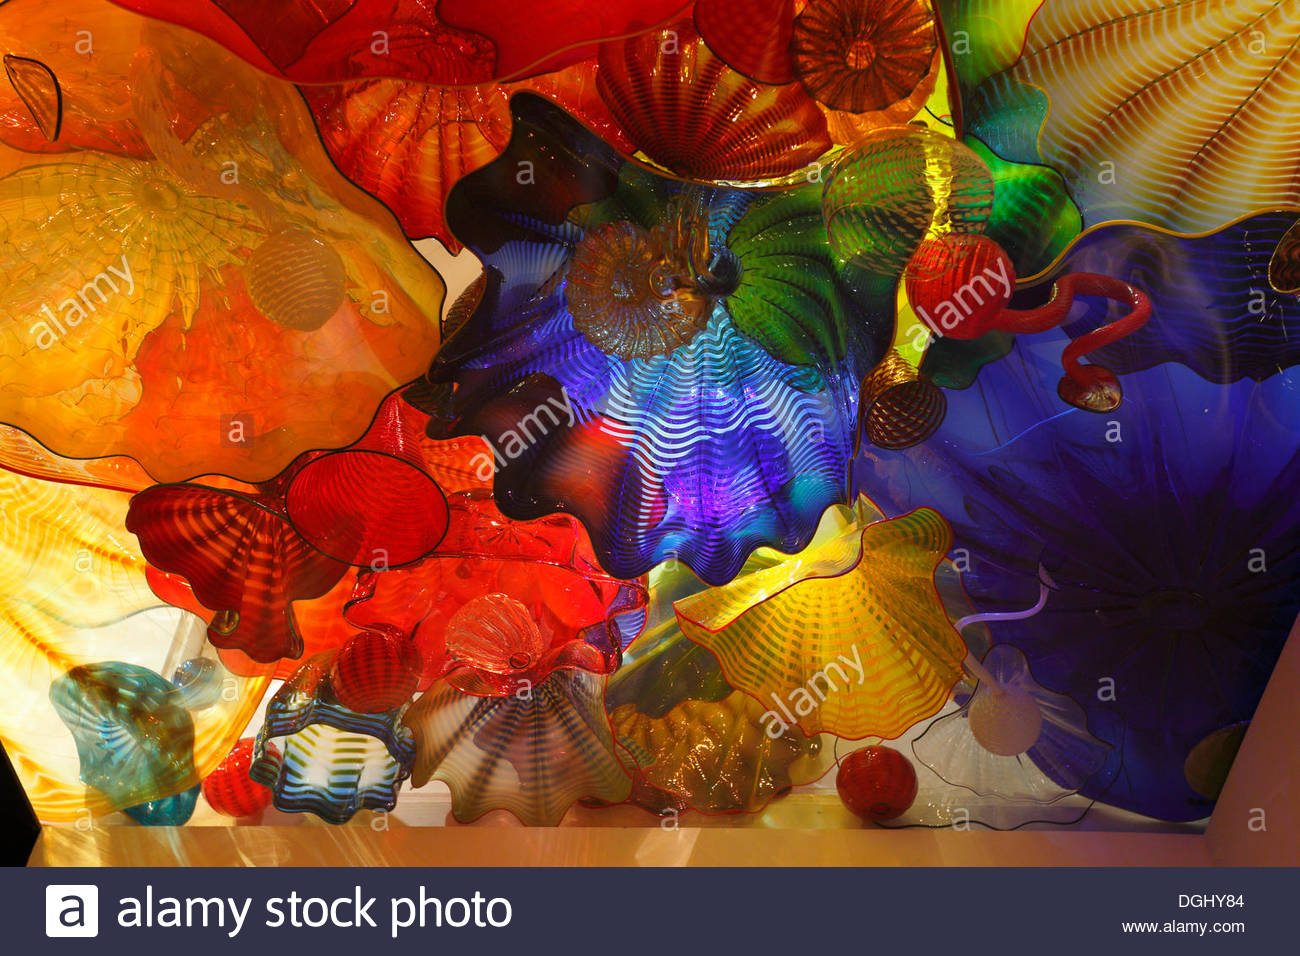 Exhibition of coloured glass by Dale Chihuly, Montreal Museum of Fine Arts, Montréal, Quebec Province, Canada - Stock Image